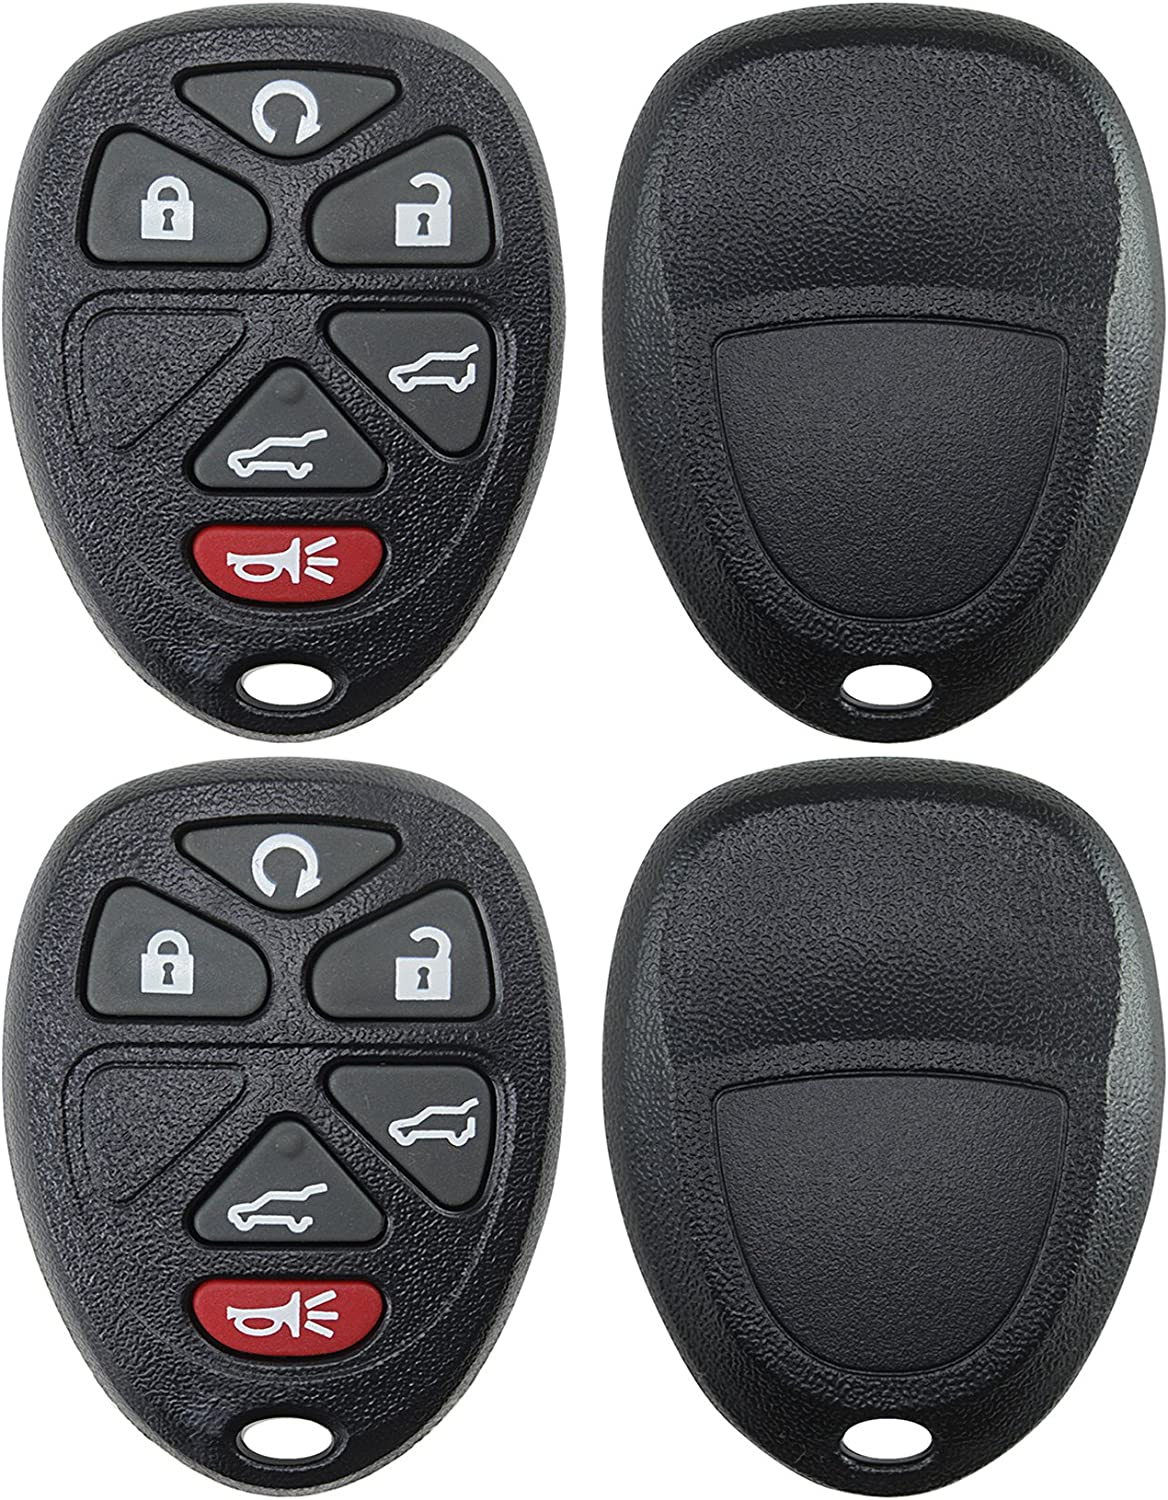 2 KeylessOption Replacement 6 Button Keyless Entry Remote Key Fob Shell Case and Button Pad Black